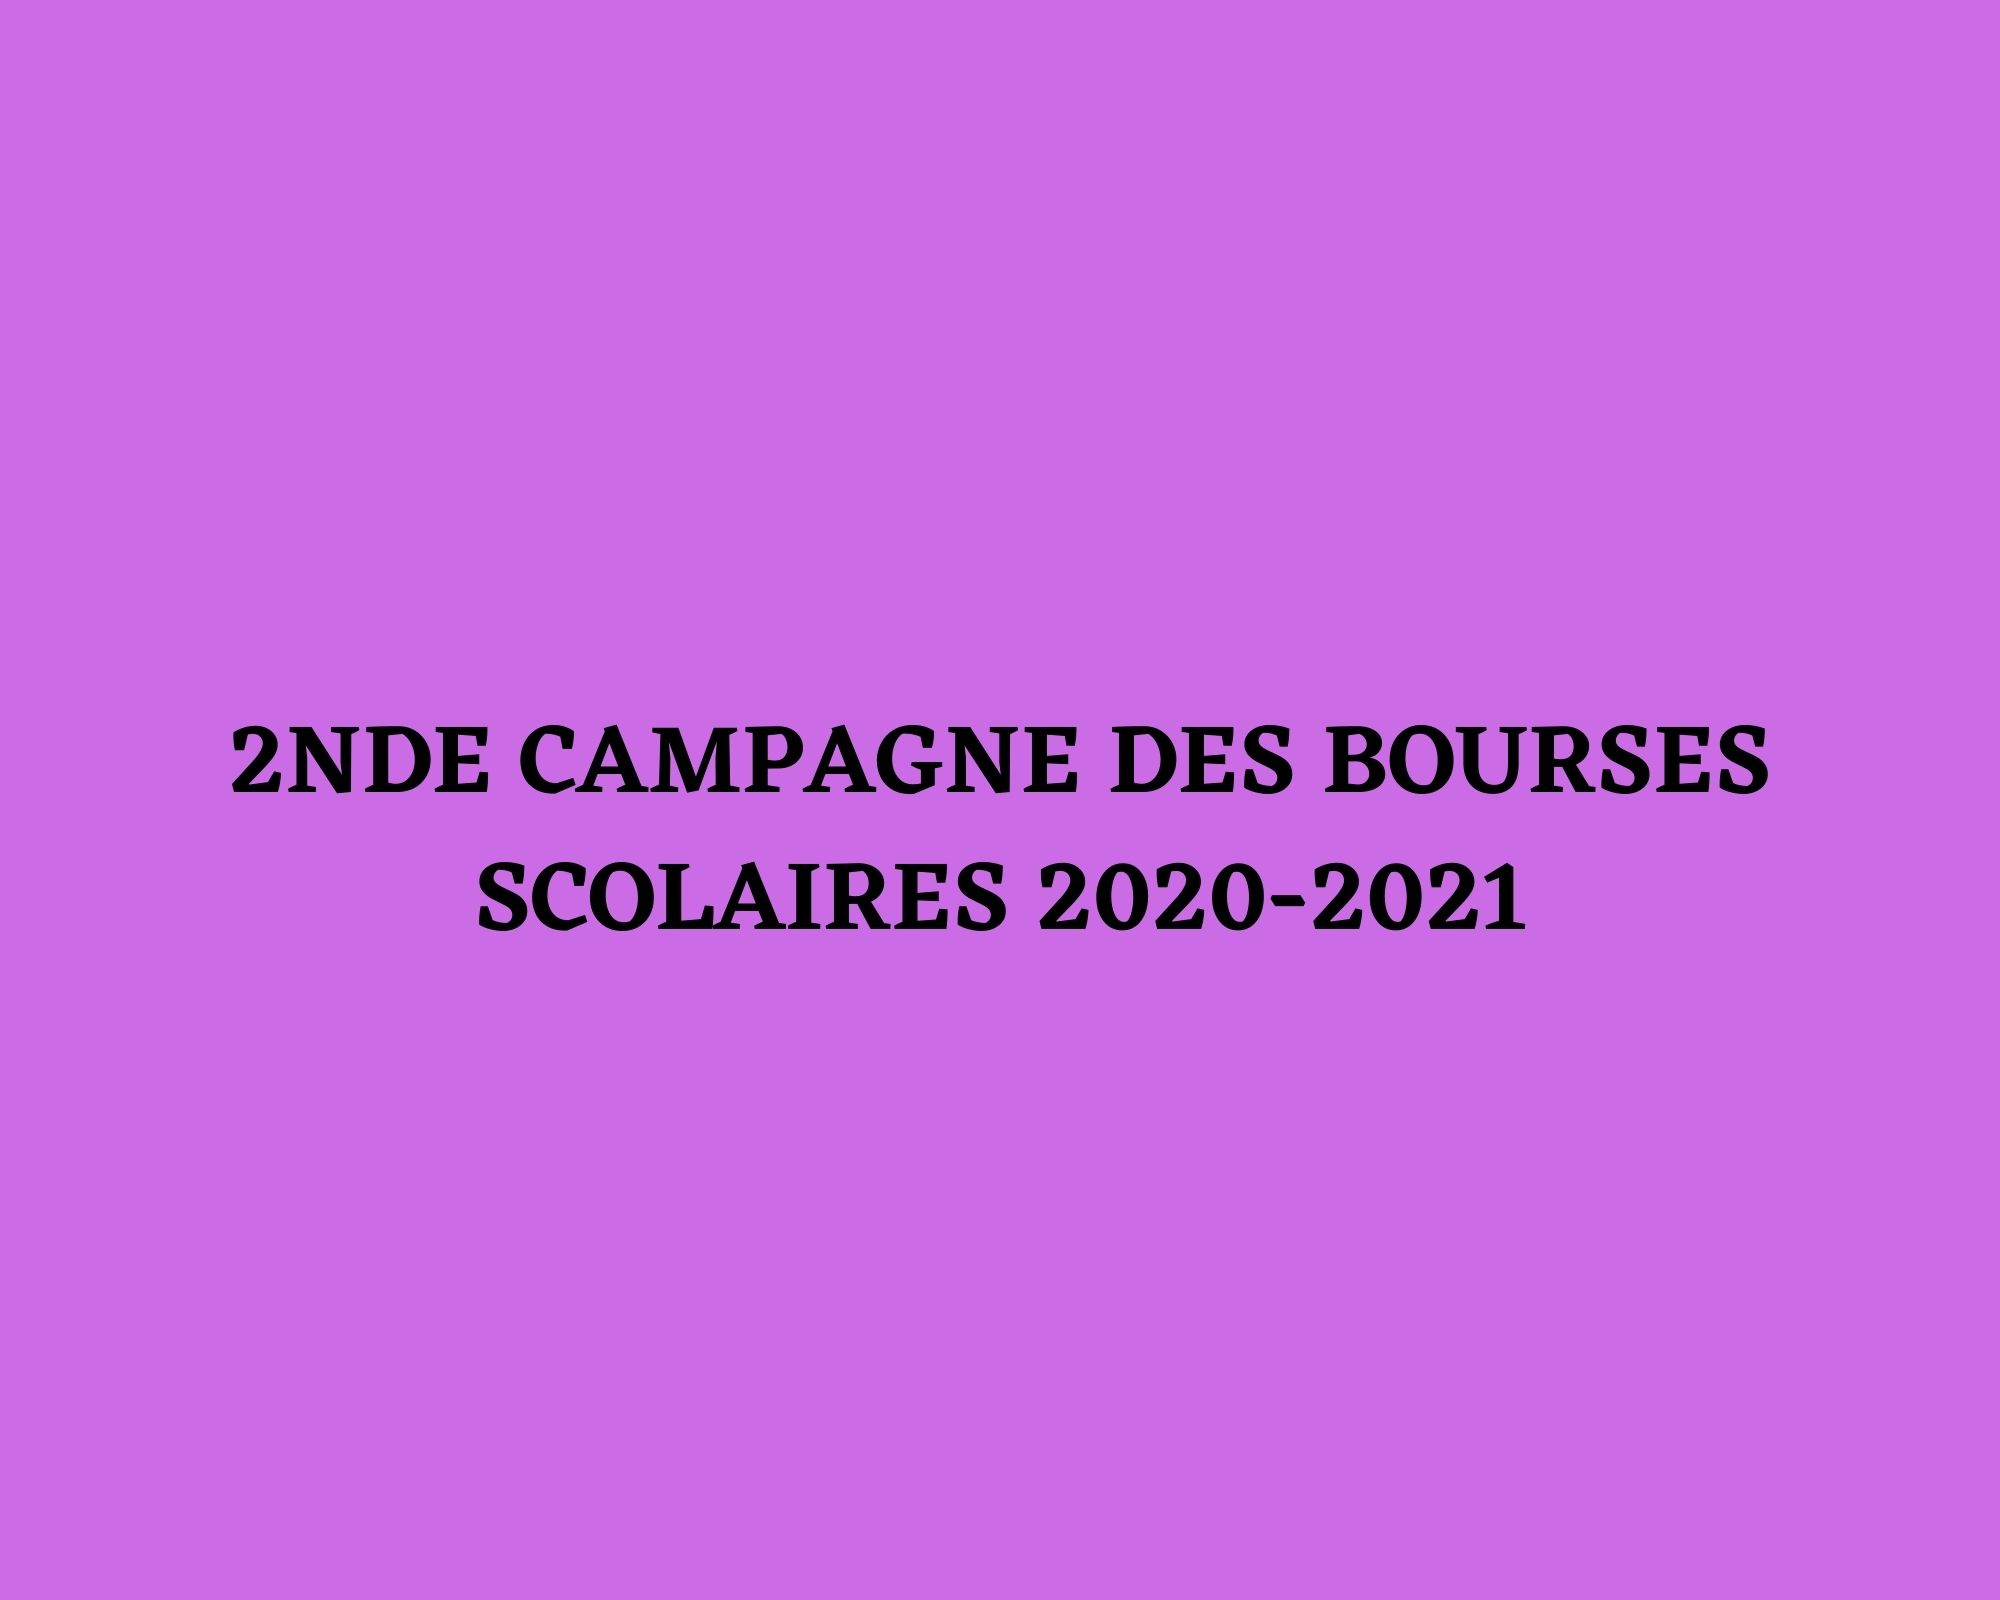 2nde campagne des bourses scolaires